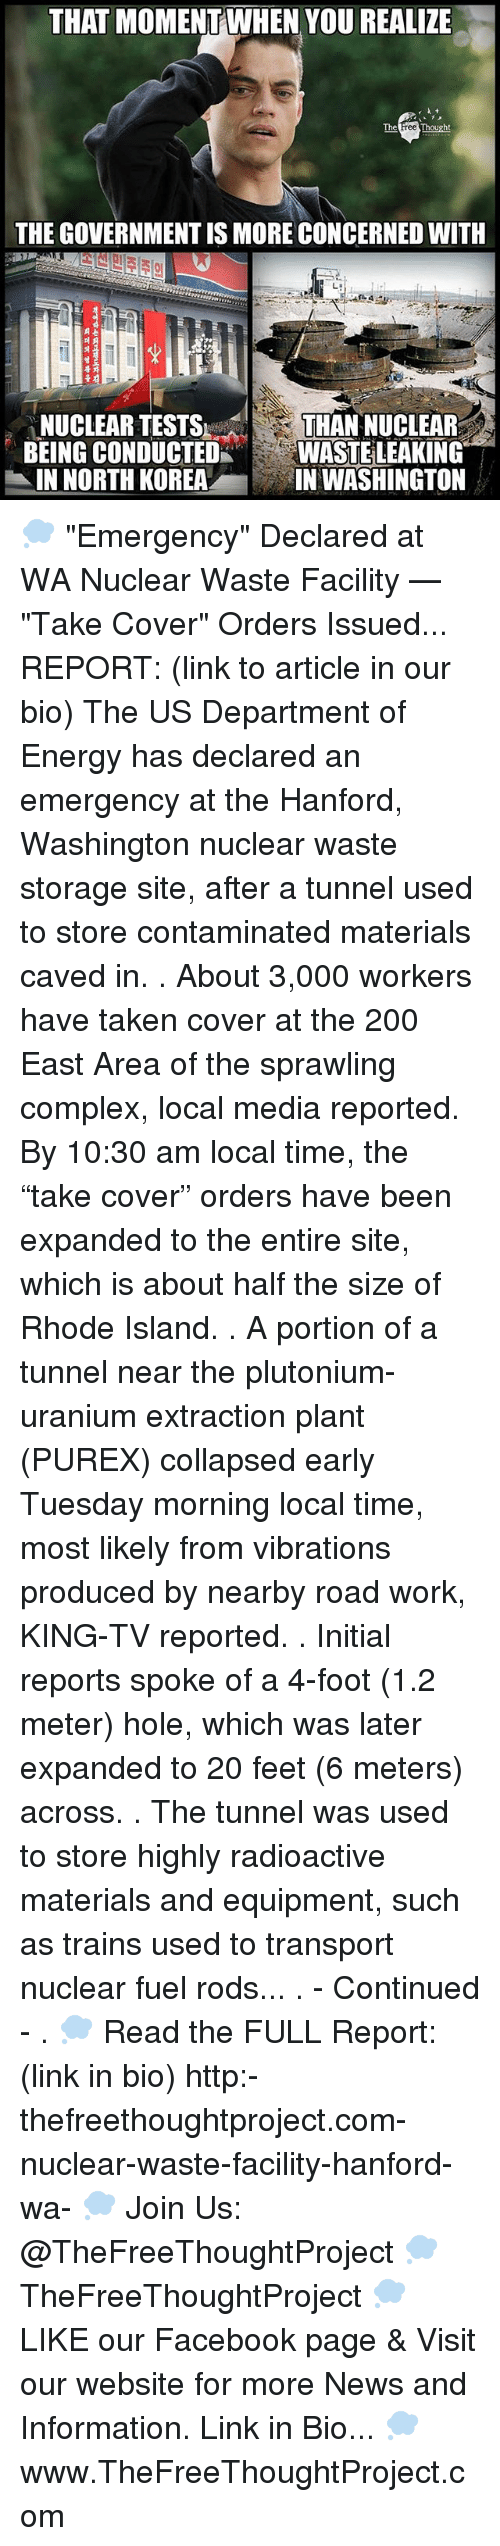 "Rhode Island: THAT MOMENT WHEN YOU REALIZE  The  Thought  THE GOVERNMENT IS MORE CONCERNED WITH  NUCLEAR TESTS  THAN NUCLEAR  BEING CONDUCTED  WASTE LEAKING  IN NORTH KOREA  IN WASHINGTON 💭 ""Emergency"" Declared at WA Nuclear Waste Facility — ""Take Cover"" Orders Issued... REPORT: (link to article in our bio) The US Department of Energy has declared an emergency at the Hanford, Washington nuclear waste storage site, after a tunnel used to store contaminated materials caved in. . About 3,000 workers have taken cover at the 200 East Area of the sprawling complex, local media reported. By 10:30 am local time, the ""take cover"" orders have been expanded to the entire site, which is about half the size of Rhode Island. . A portion of a tunnel near the plutonium-uranium extraction plant (PUREX) collapsed early Tuesday morning local time, most likely from vibrations produced by nearby road work, KING-TV reported. . Initial reports spoke of a 4-foot (1.2 meter) hole, which was later expanded to 20 feet (6 meters) across. . The tunnel was used to store highly radioactive materials and equipment, such as trains used to transport nuclear fuel rods... . - Continued - . 💭 Read the FULL Report: (link in bio) http:-thefreethoughtproject.com-nuclear-waste-facility-hanford-wa- 💭 Join Us: @TheFreeThoughtProject 💭 TheFreeThoughtProject 💭 LIKE our Facebook page & Visit our website for more News and Information. Link in Bio... 💭 www.TheFreeThoughtProject.com"